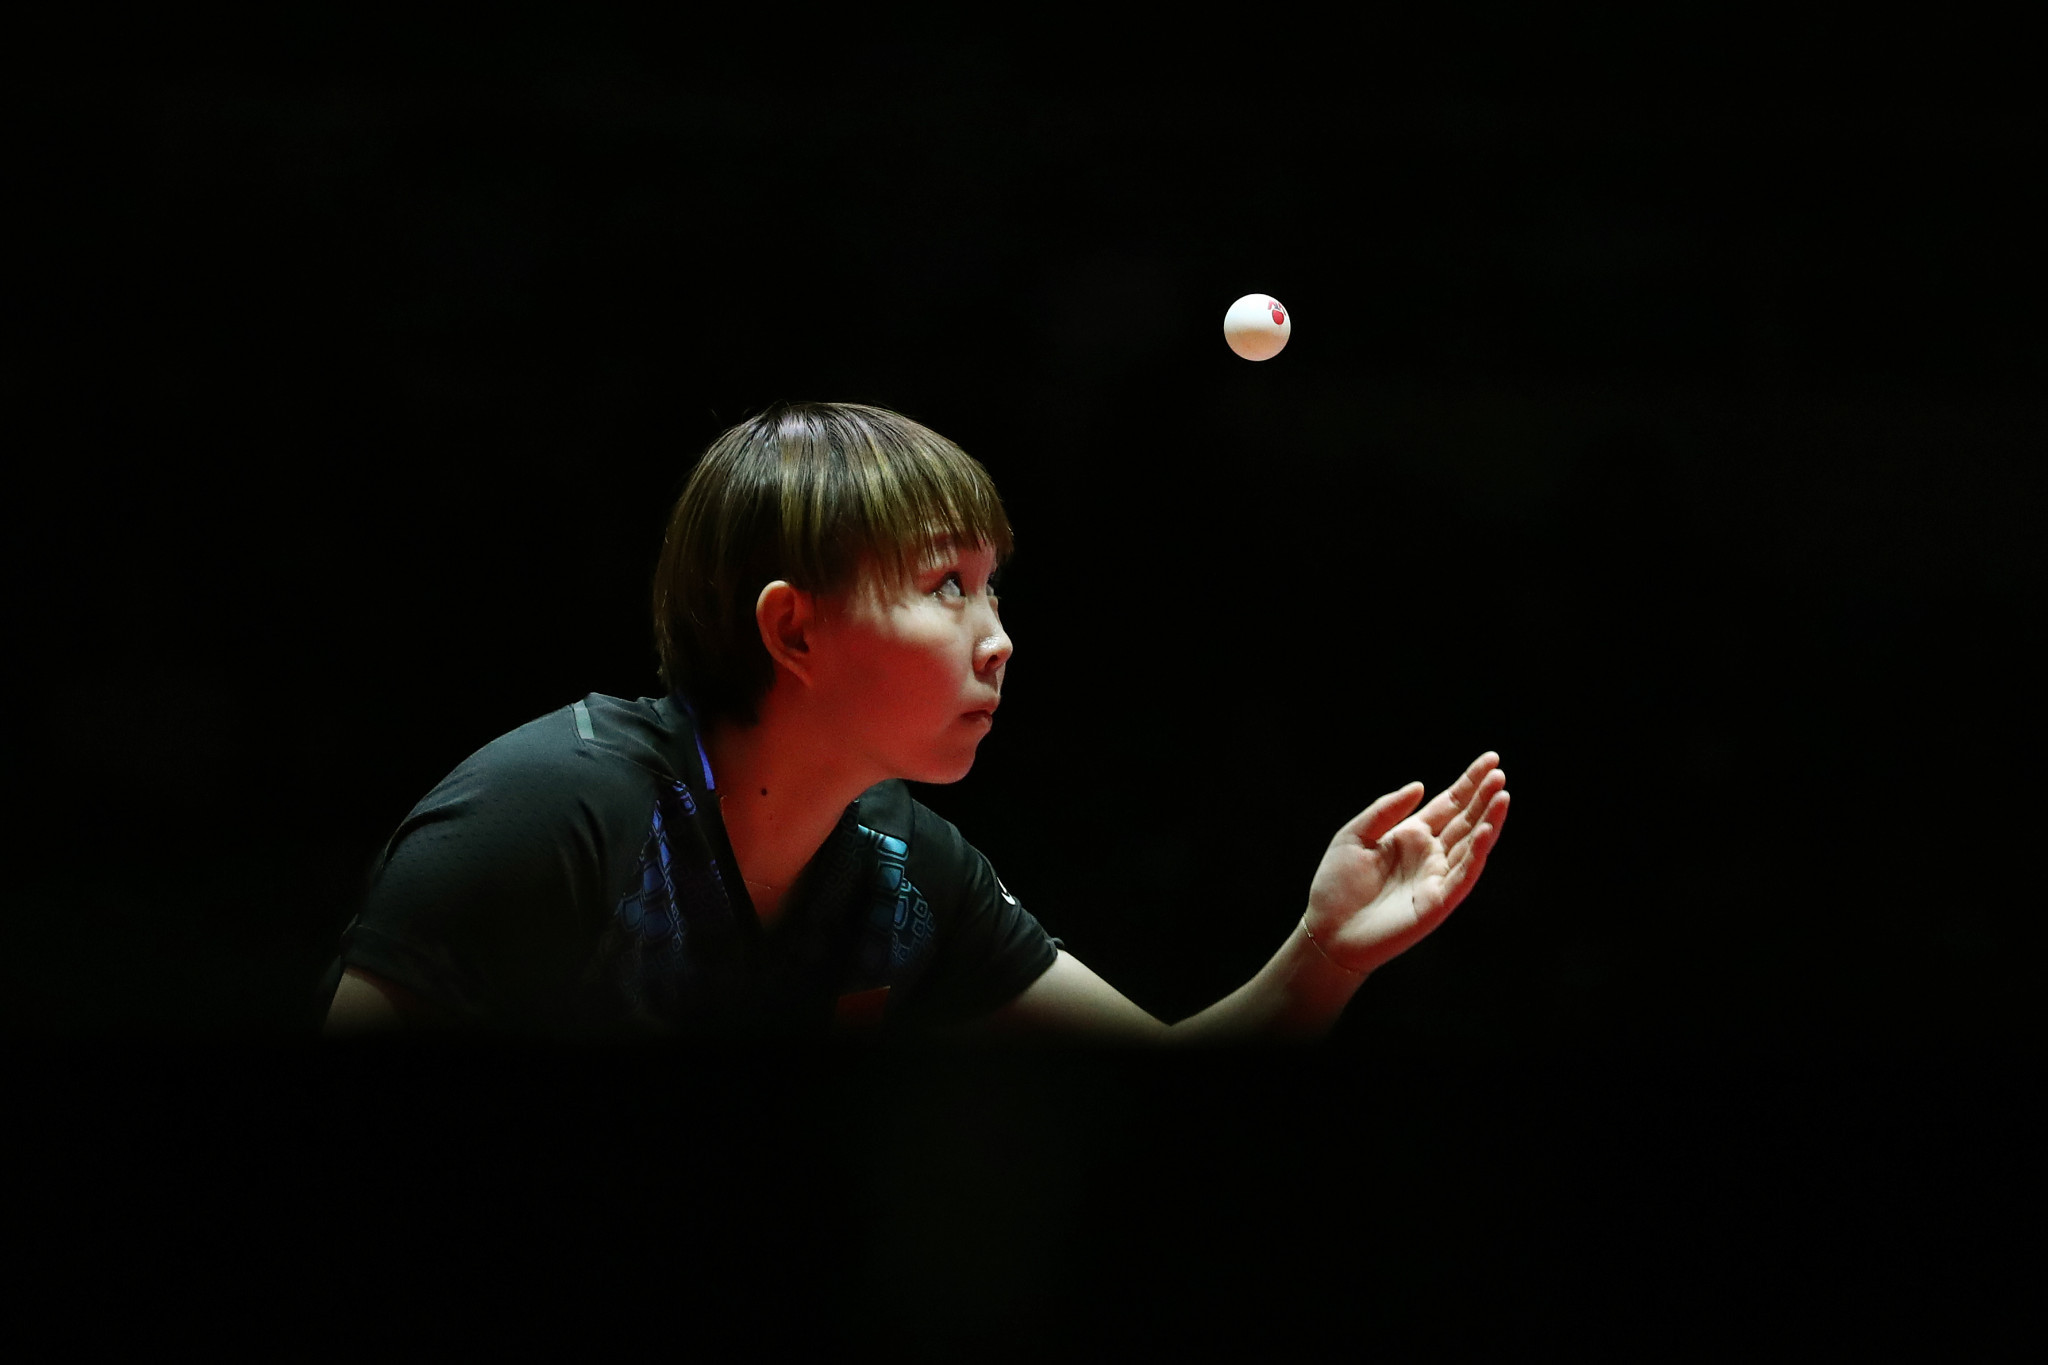 Zhu Yuling learned her last 16 opponent at the Women's World Cup ©Getty Images